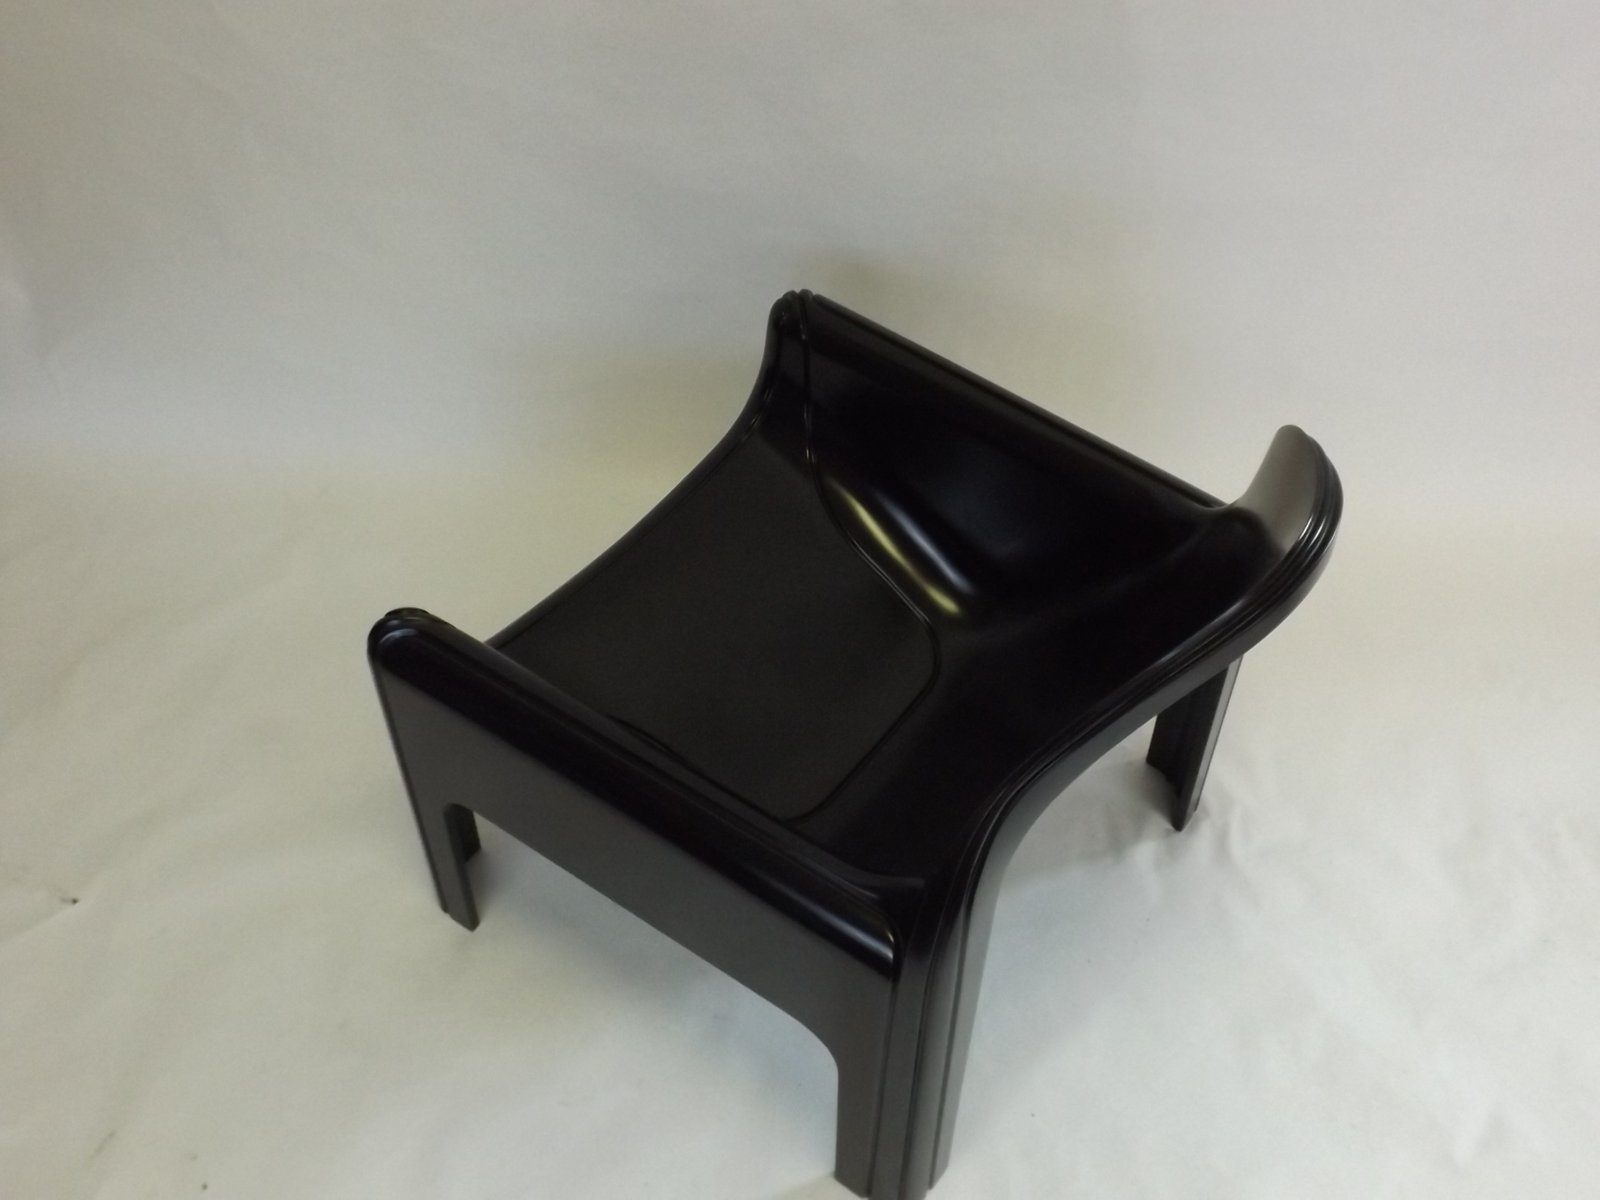 4794 Chair by Gae Aulenti for Kartell 1974 for sale at Pamono